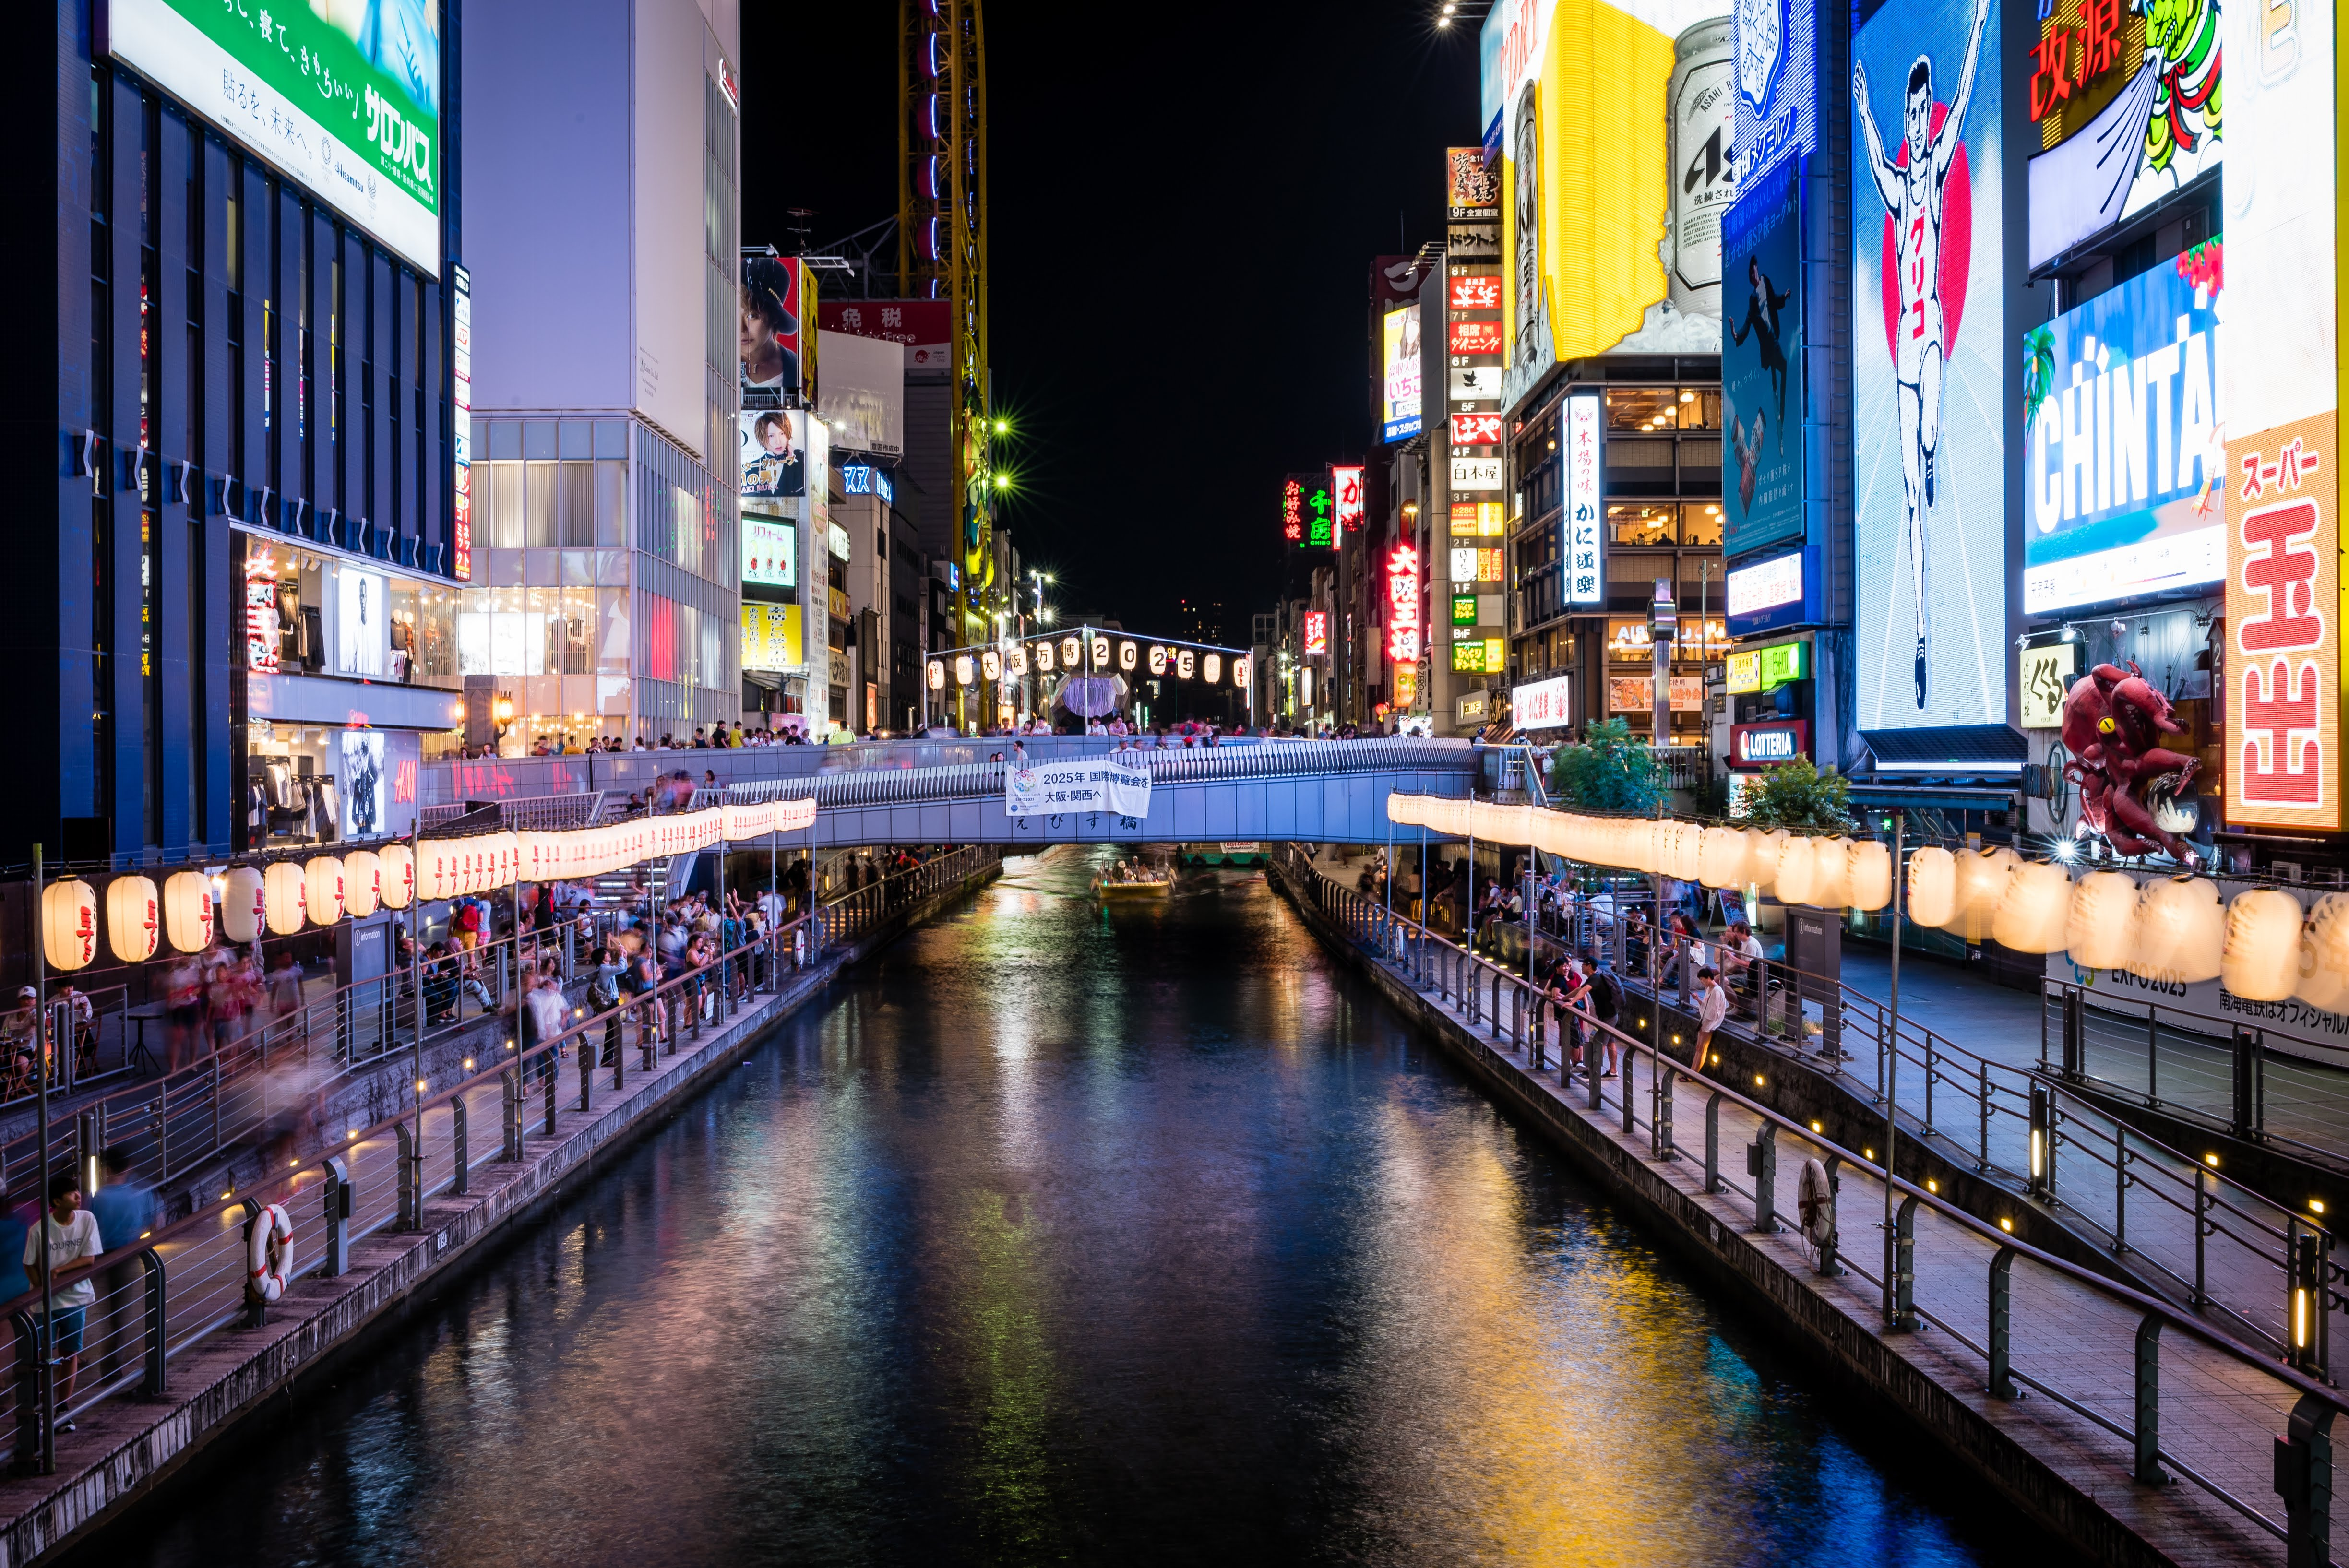 When the sun goes down, Osaka (esaecially Dotombori) becomes a festival of lights and colors.